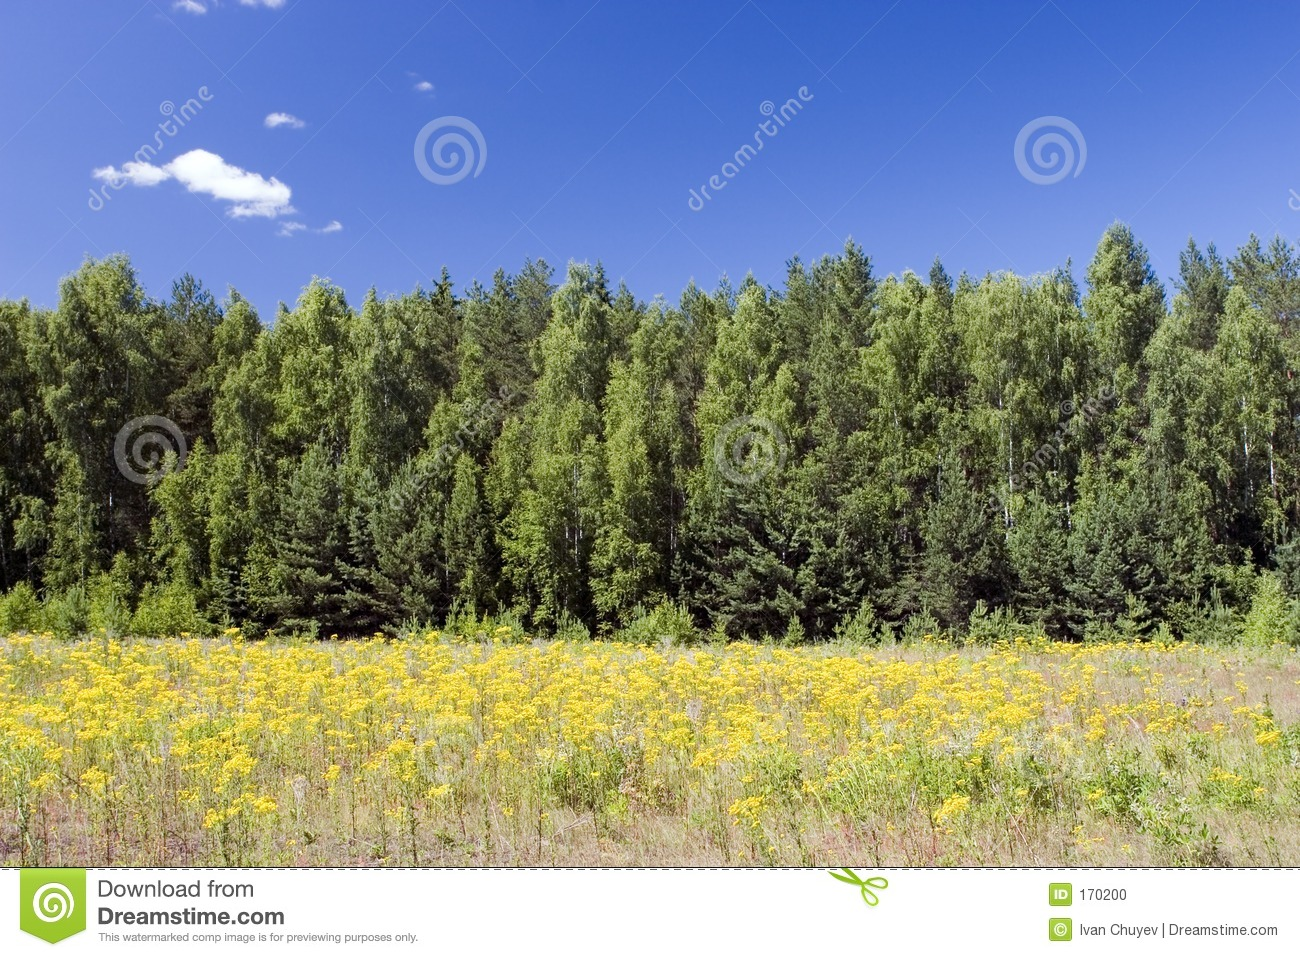 Blue sky, green forest and yellow field